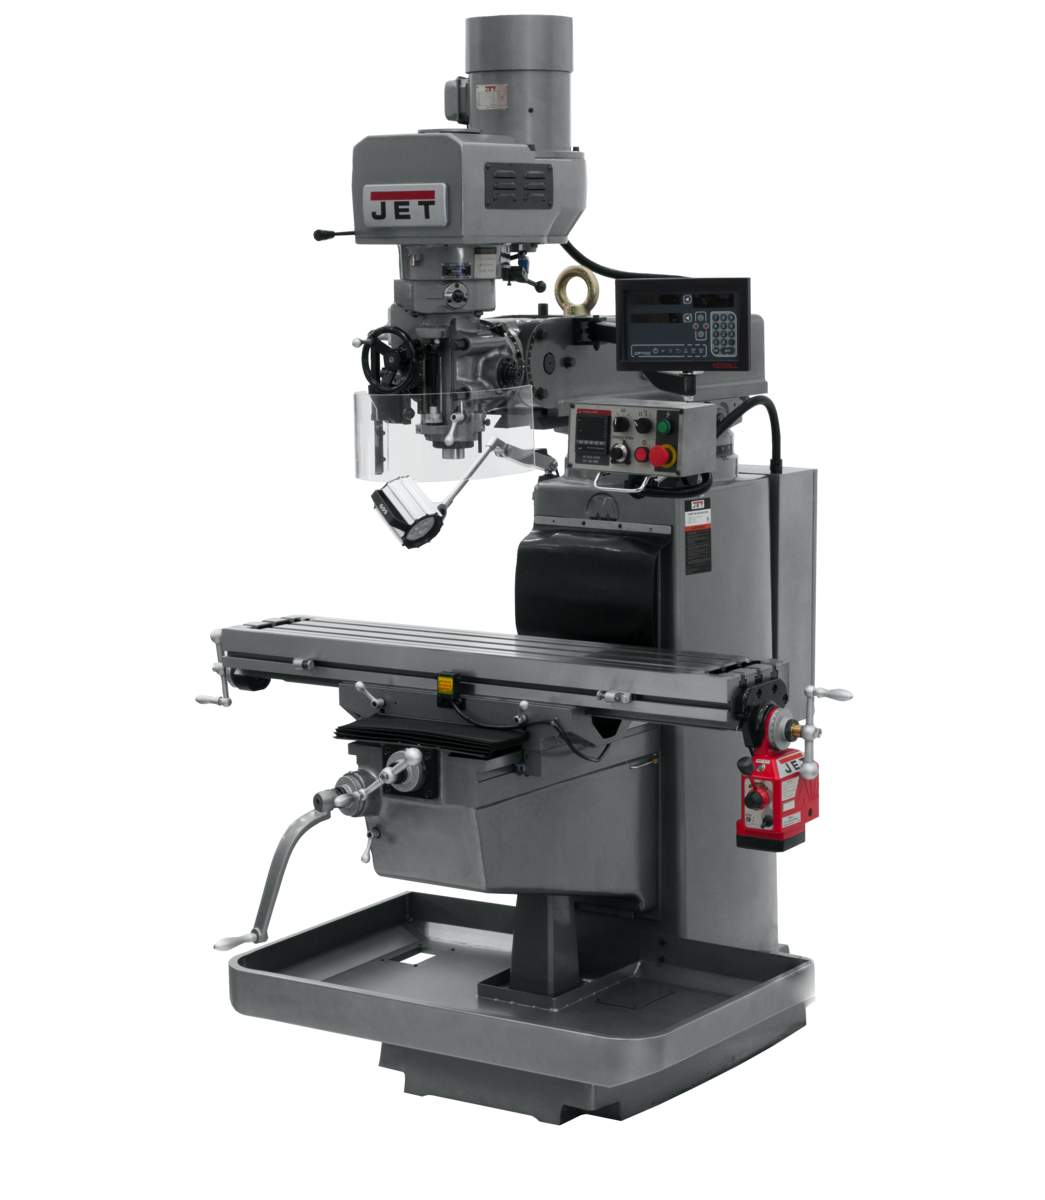 JTM-1050EVS2/230 Mill With 3-Axis Newall DP700 DRO (Quill) With X-Axis Powerfeed